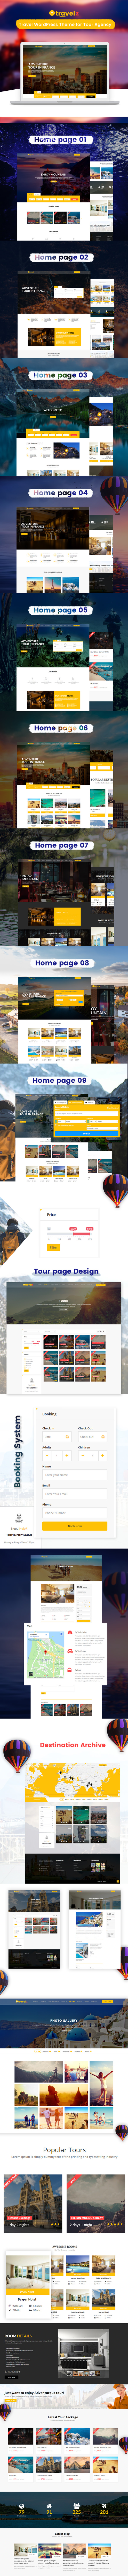 Travelz - Travel WordPress Theme for Tour Agency